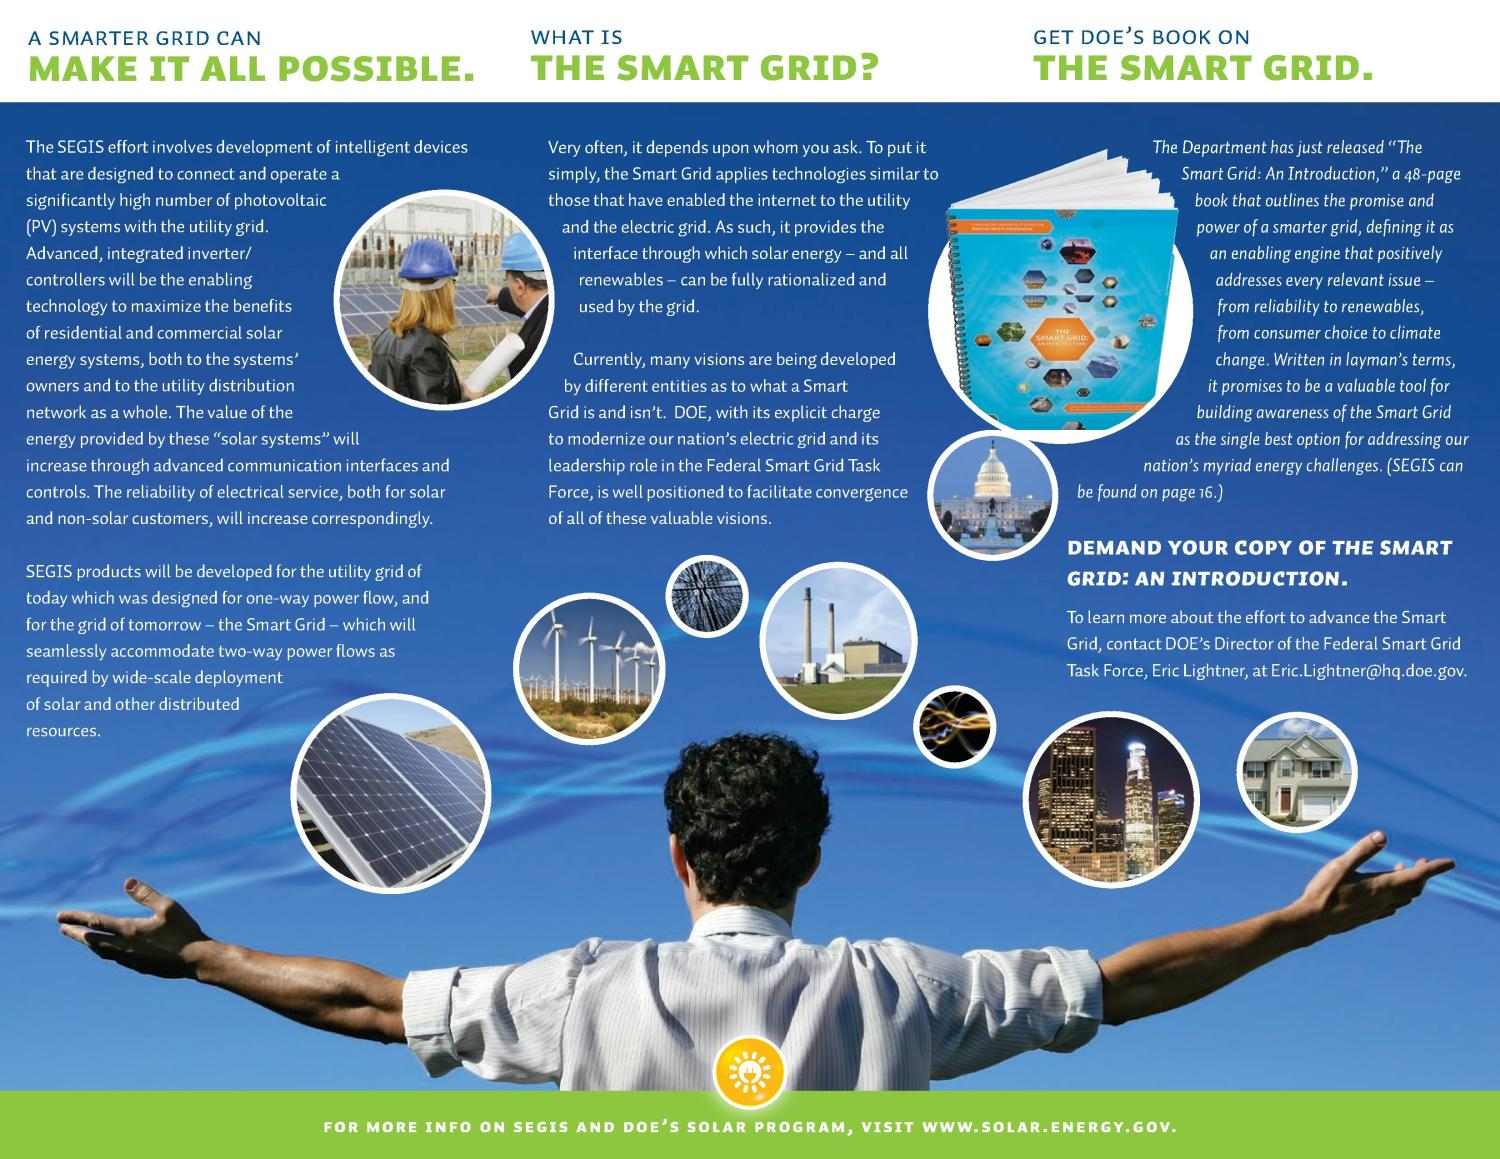 Promise of Solar Energy is Boundless: A Smarter Electric Grid Delivers on that Promise                                                                                                      [Sequence #]: 2 of 2